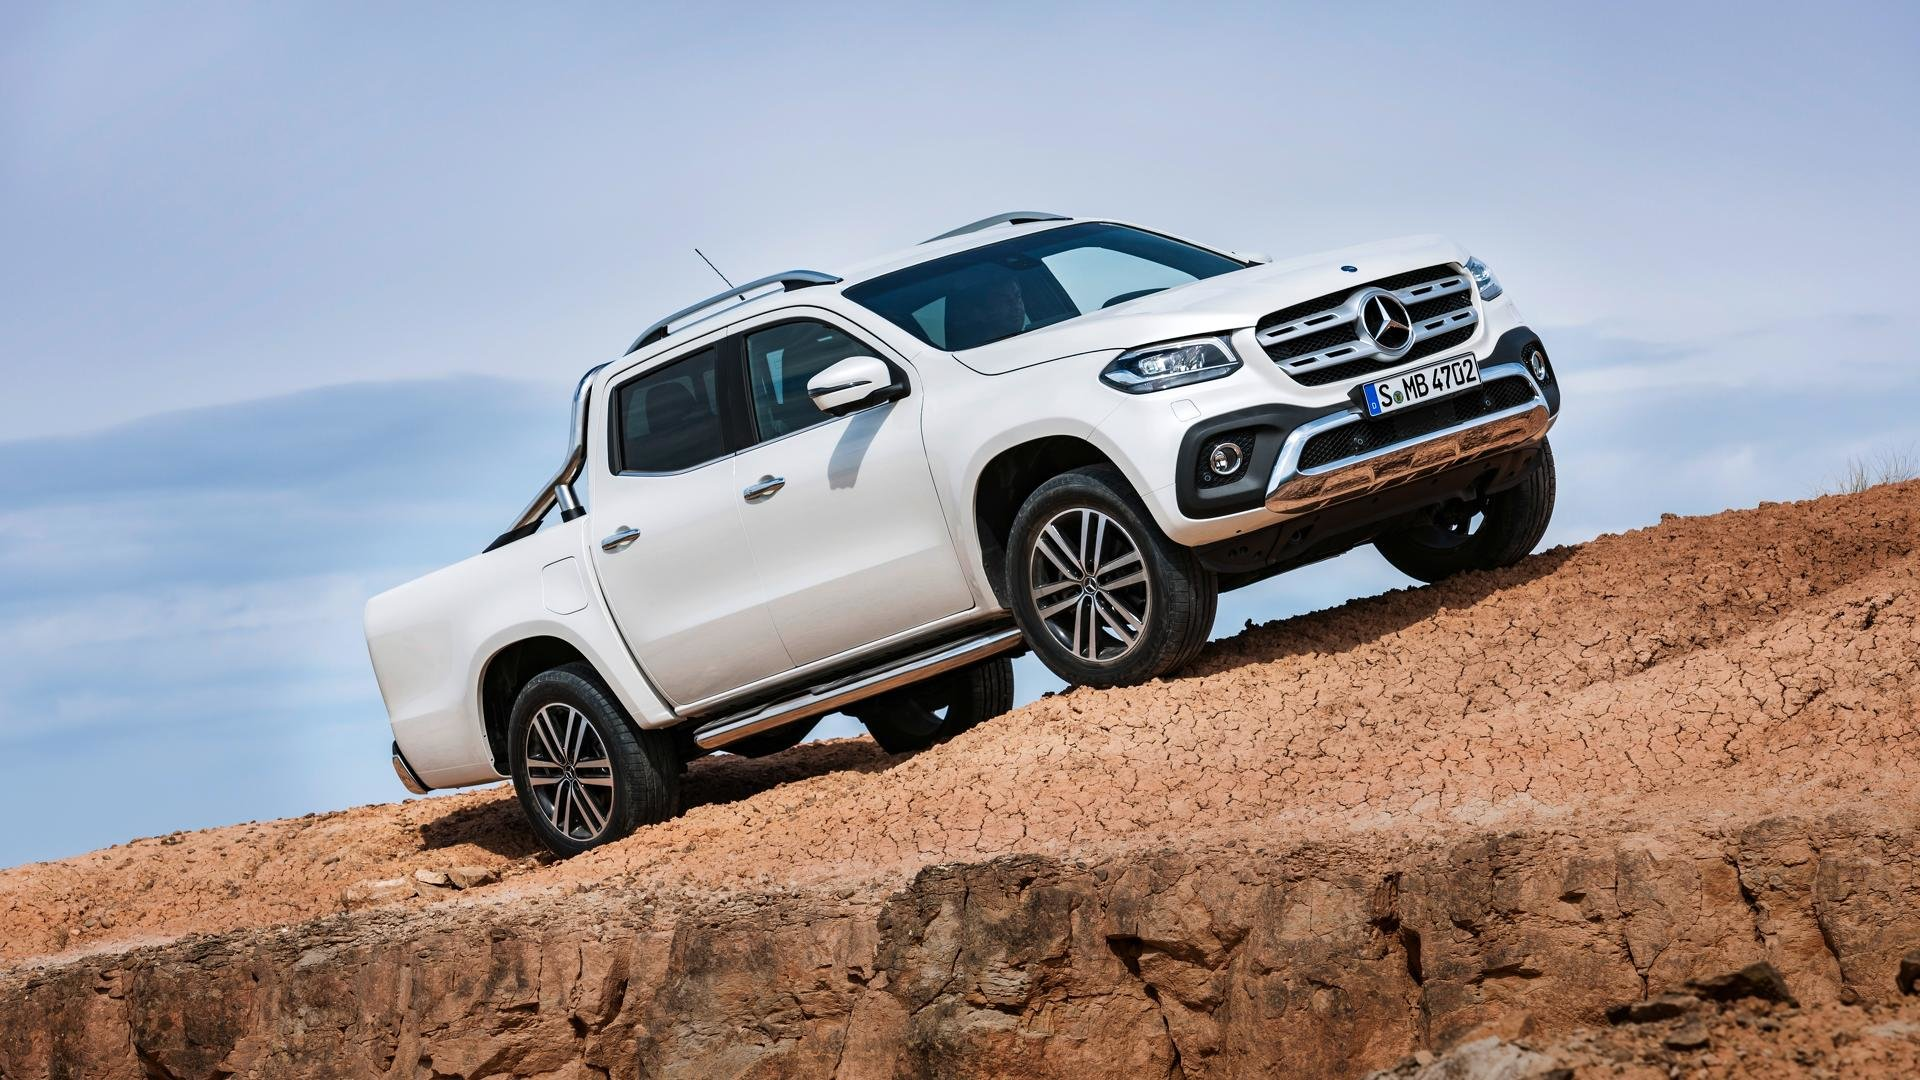 2018 LHD - Mercedes Benz X 250 pick up 4x4 - Like new For Sale (picture 1 of 1)